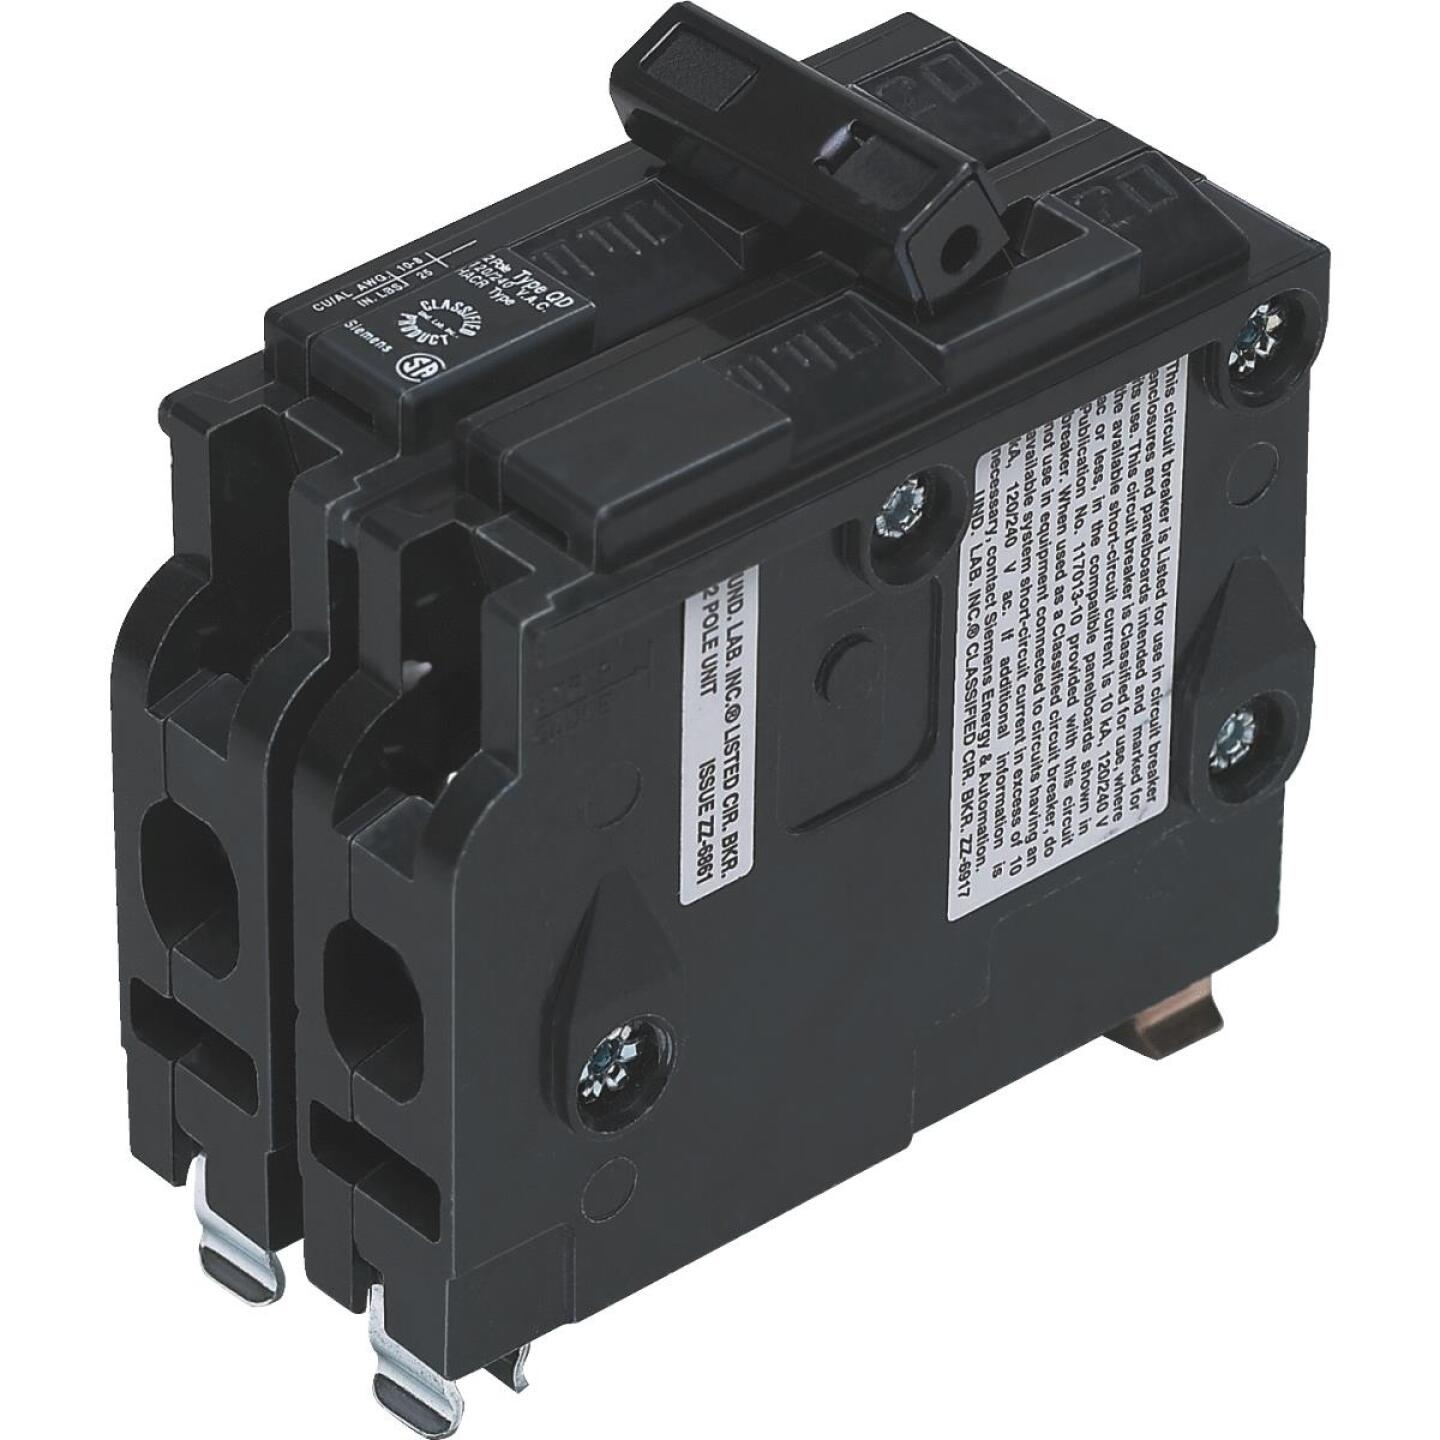 Connecticut Electric 20A Double-Pole Standard Trip Packaged Replacement Circuit Breaker For Square D Image 1